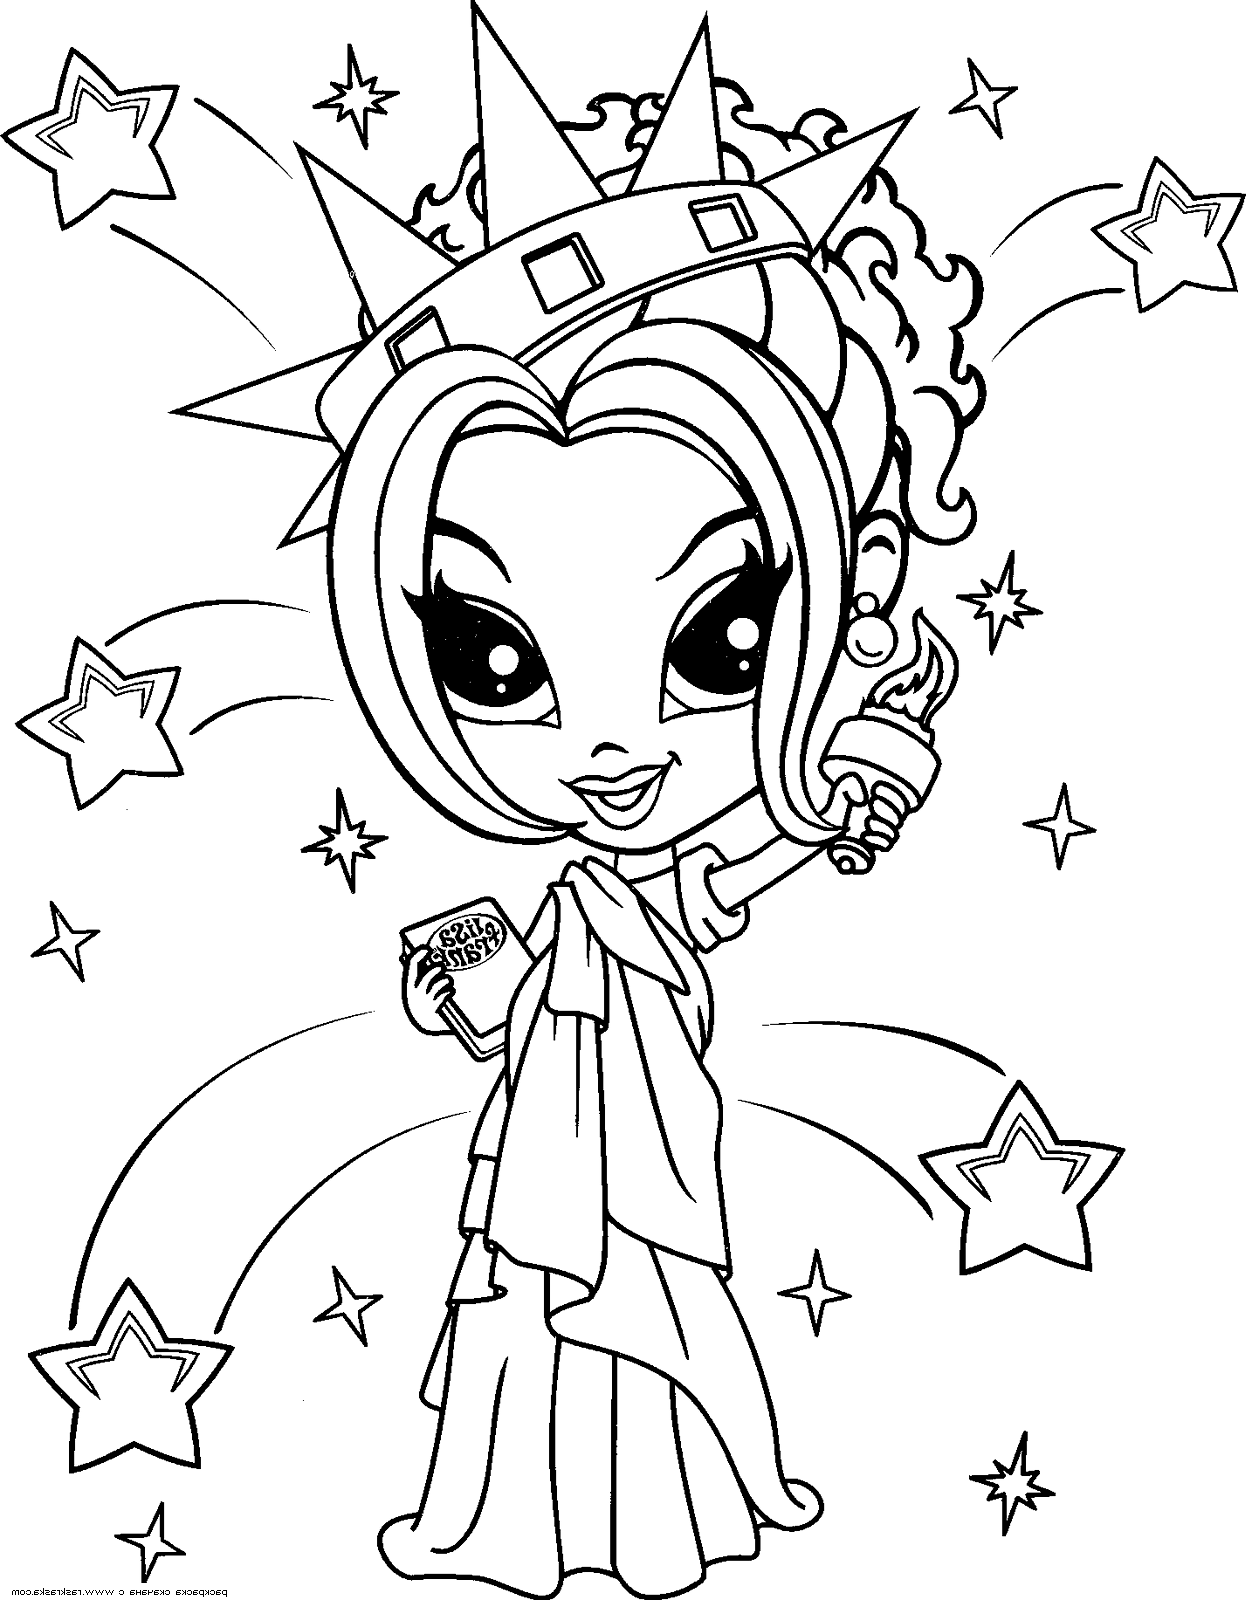 lisa frank coloring pages Google Search Lisa Frank Coloring